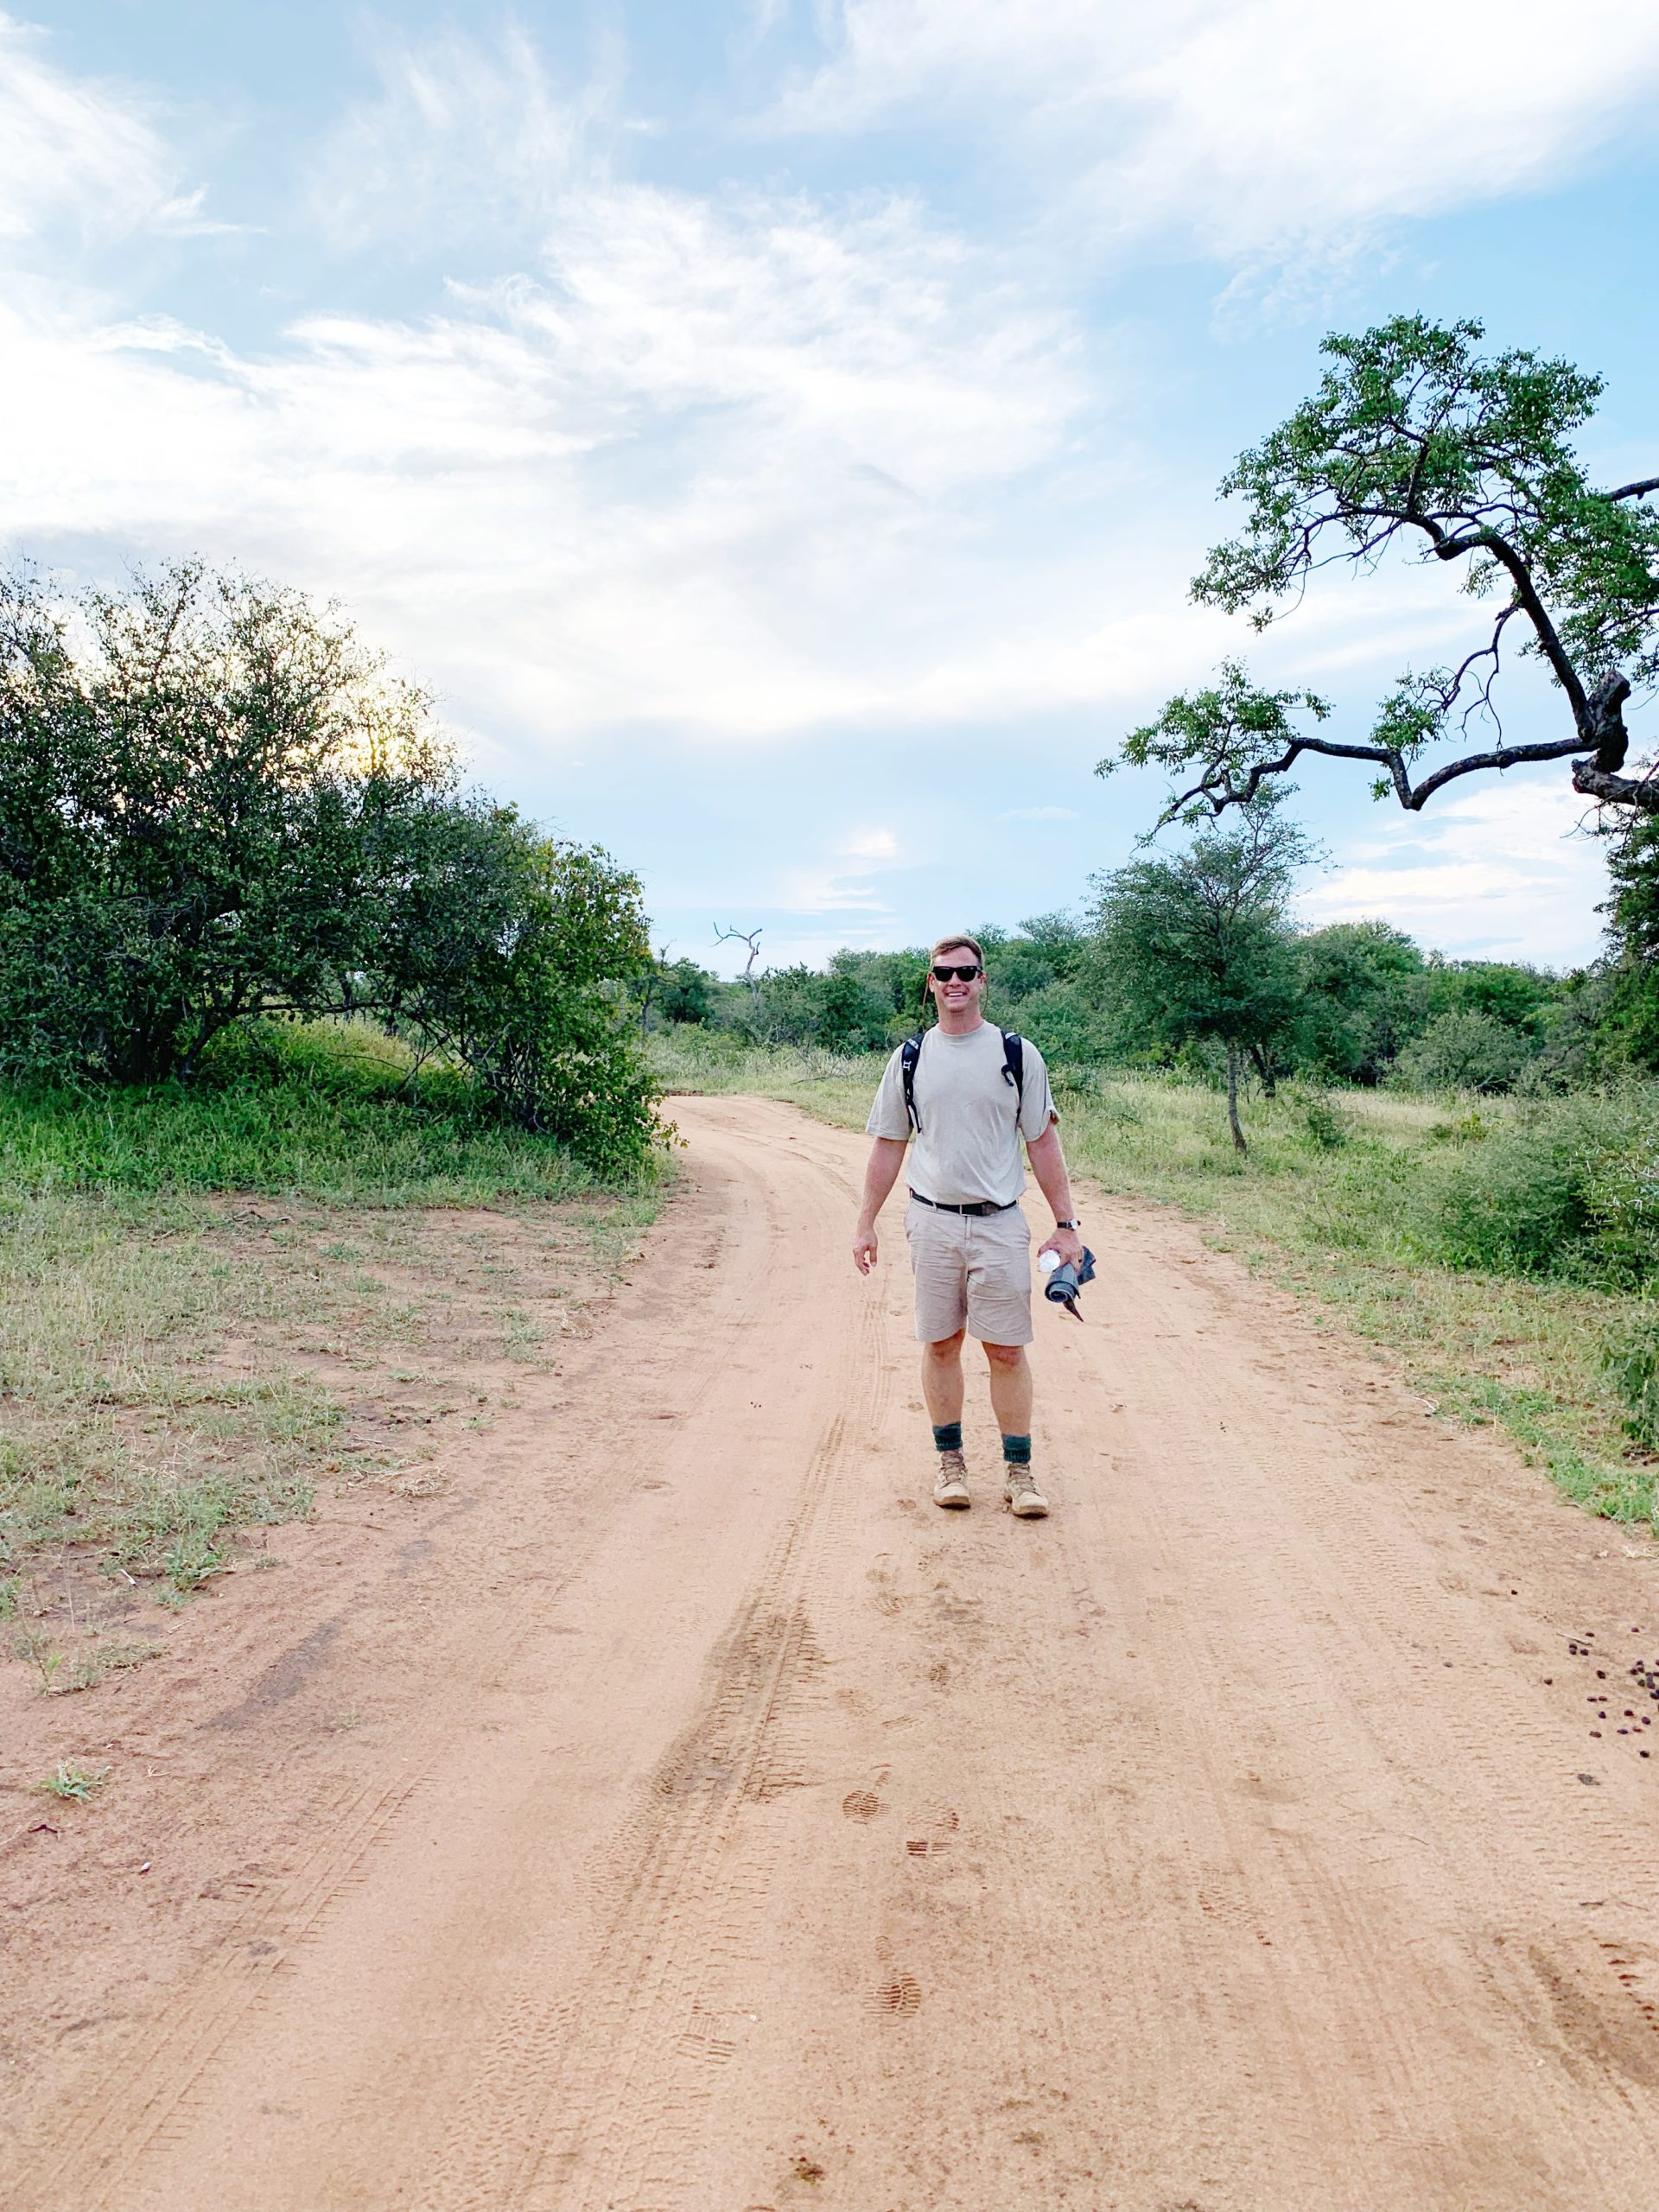 Man hiking in South Africa